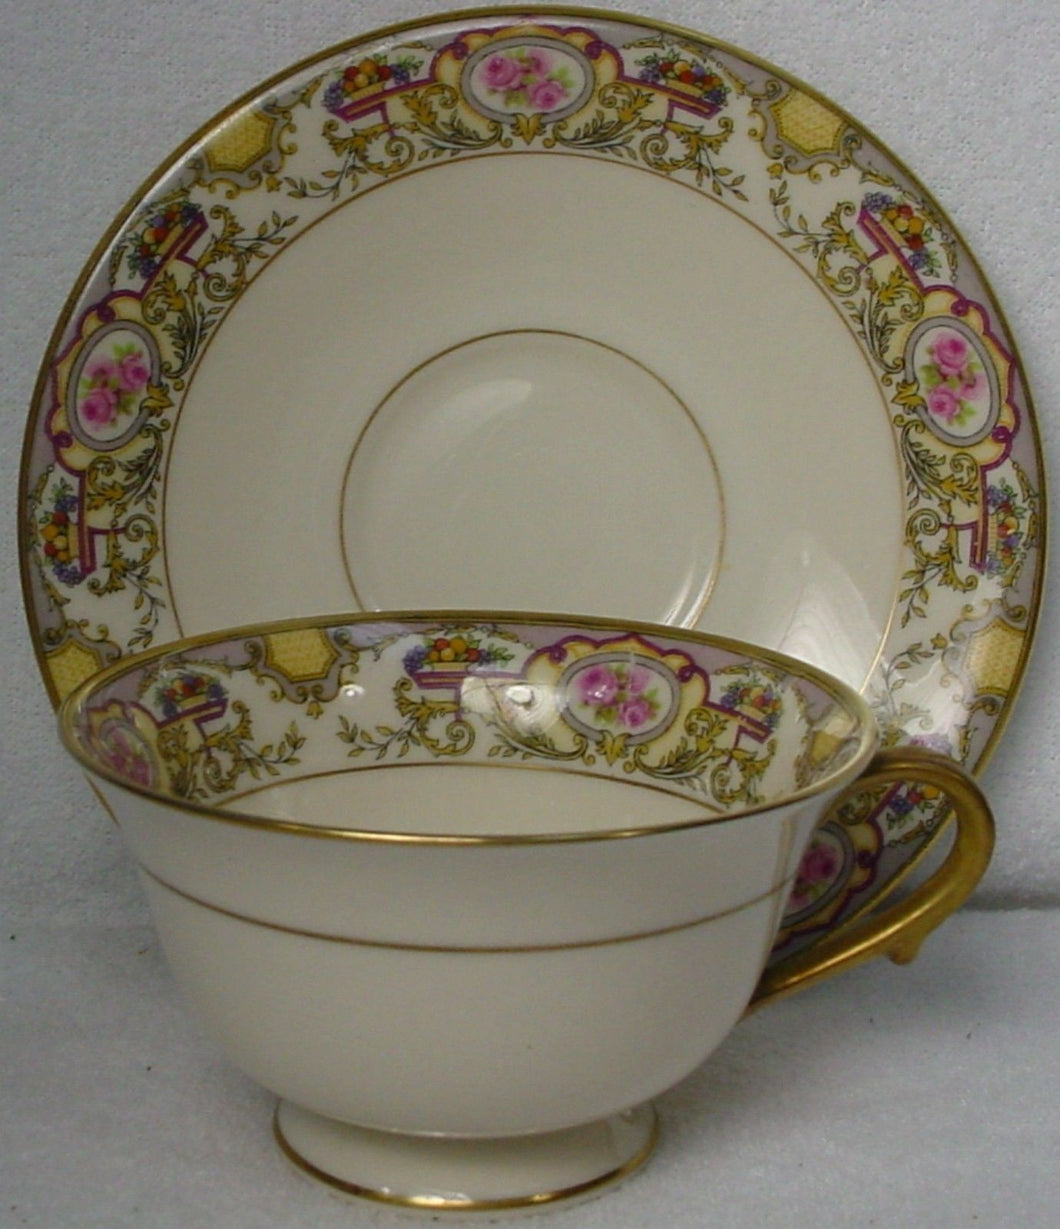 MORGAN BELLEEK china VICTORIA pattern CUP & SAUCER Set Cup 2-1/4